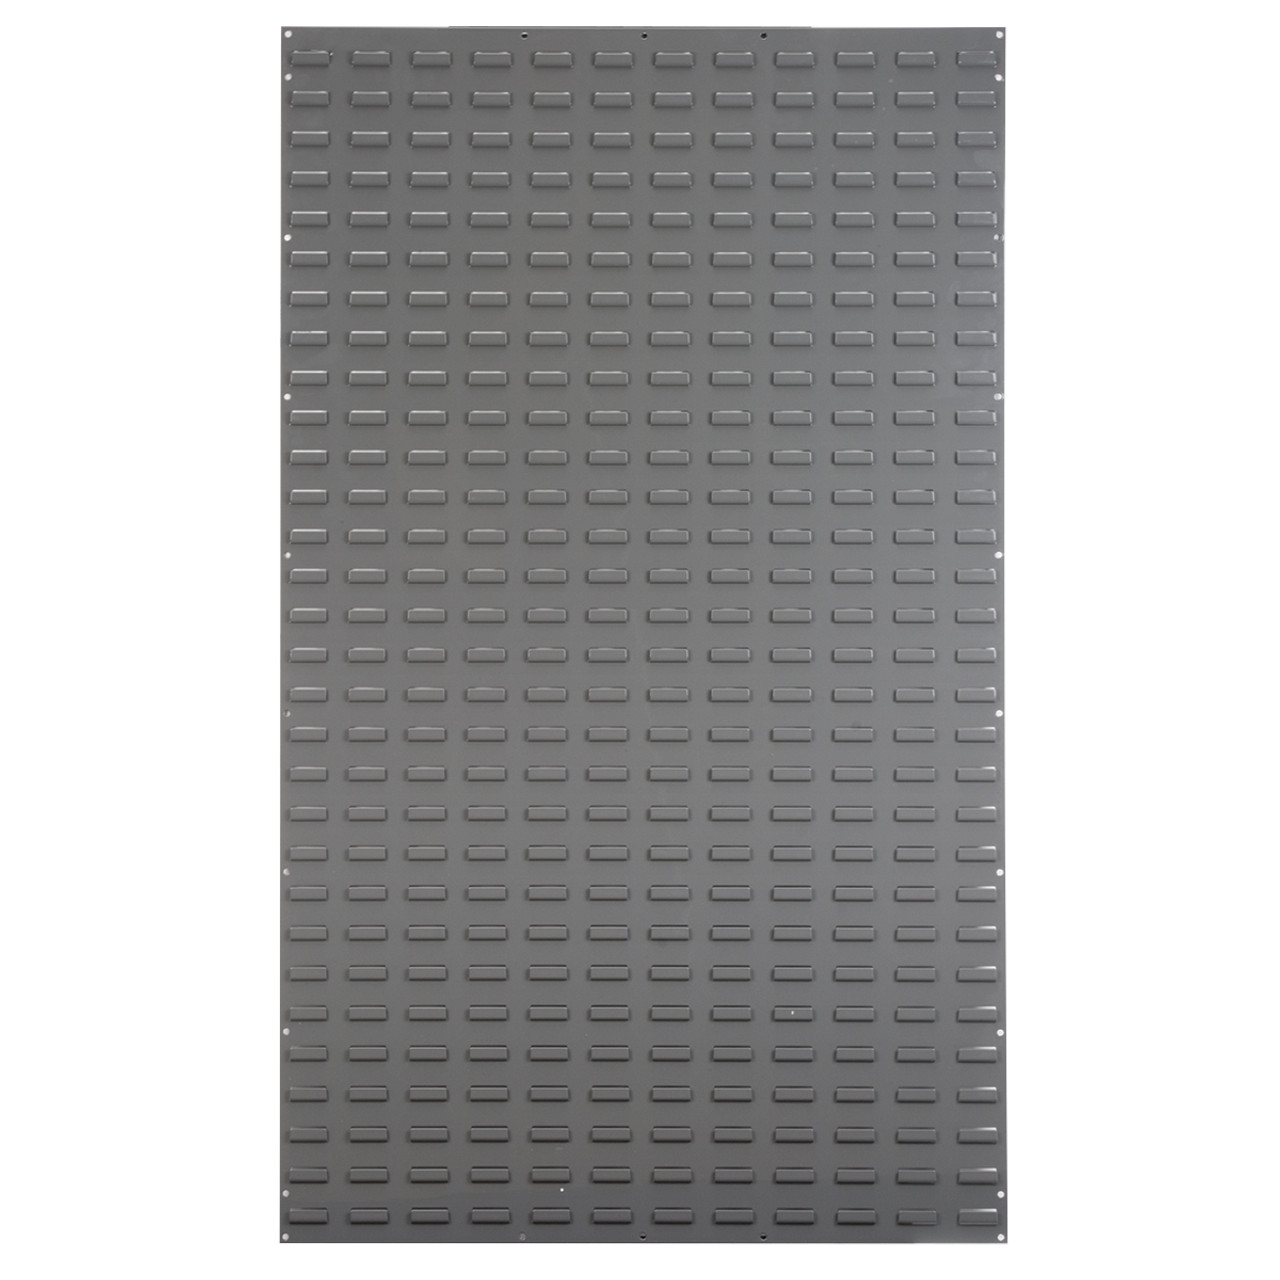 Louvered Wall Panel, 36 x 61, Gray  30161